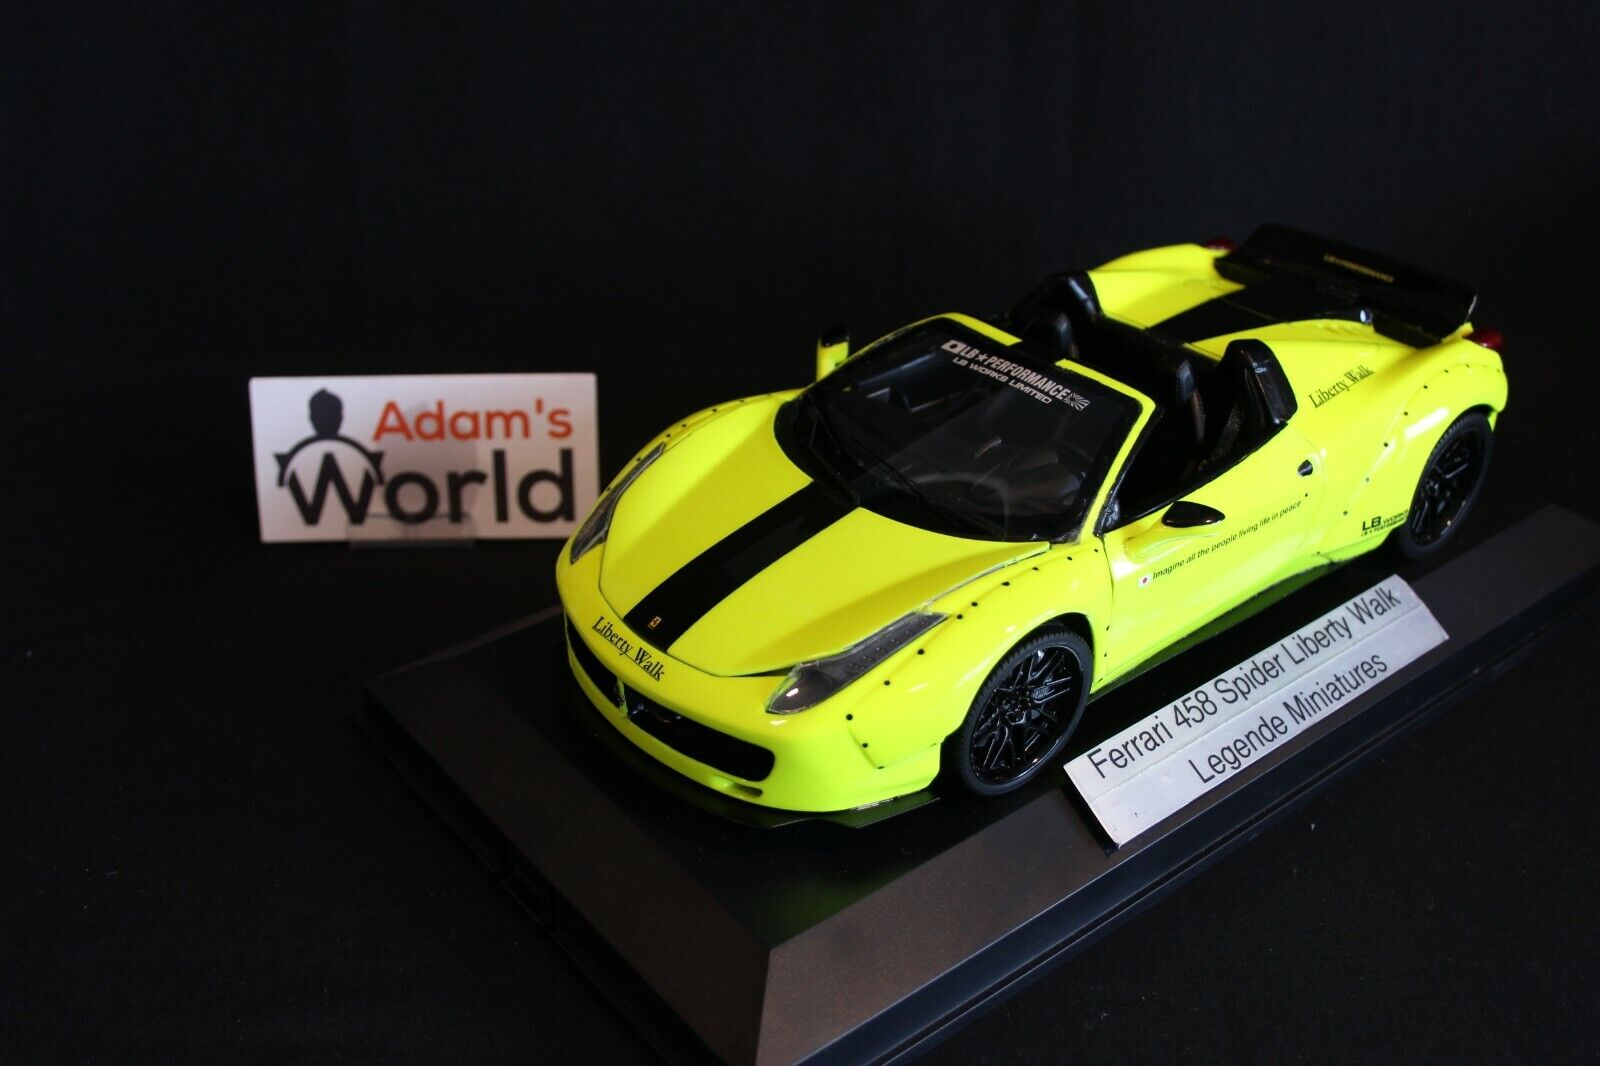 Legende Miniatures built transkit Ferrari 458 Spider 1 18 Liberty Walk (PJBB)